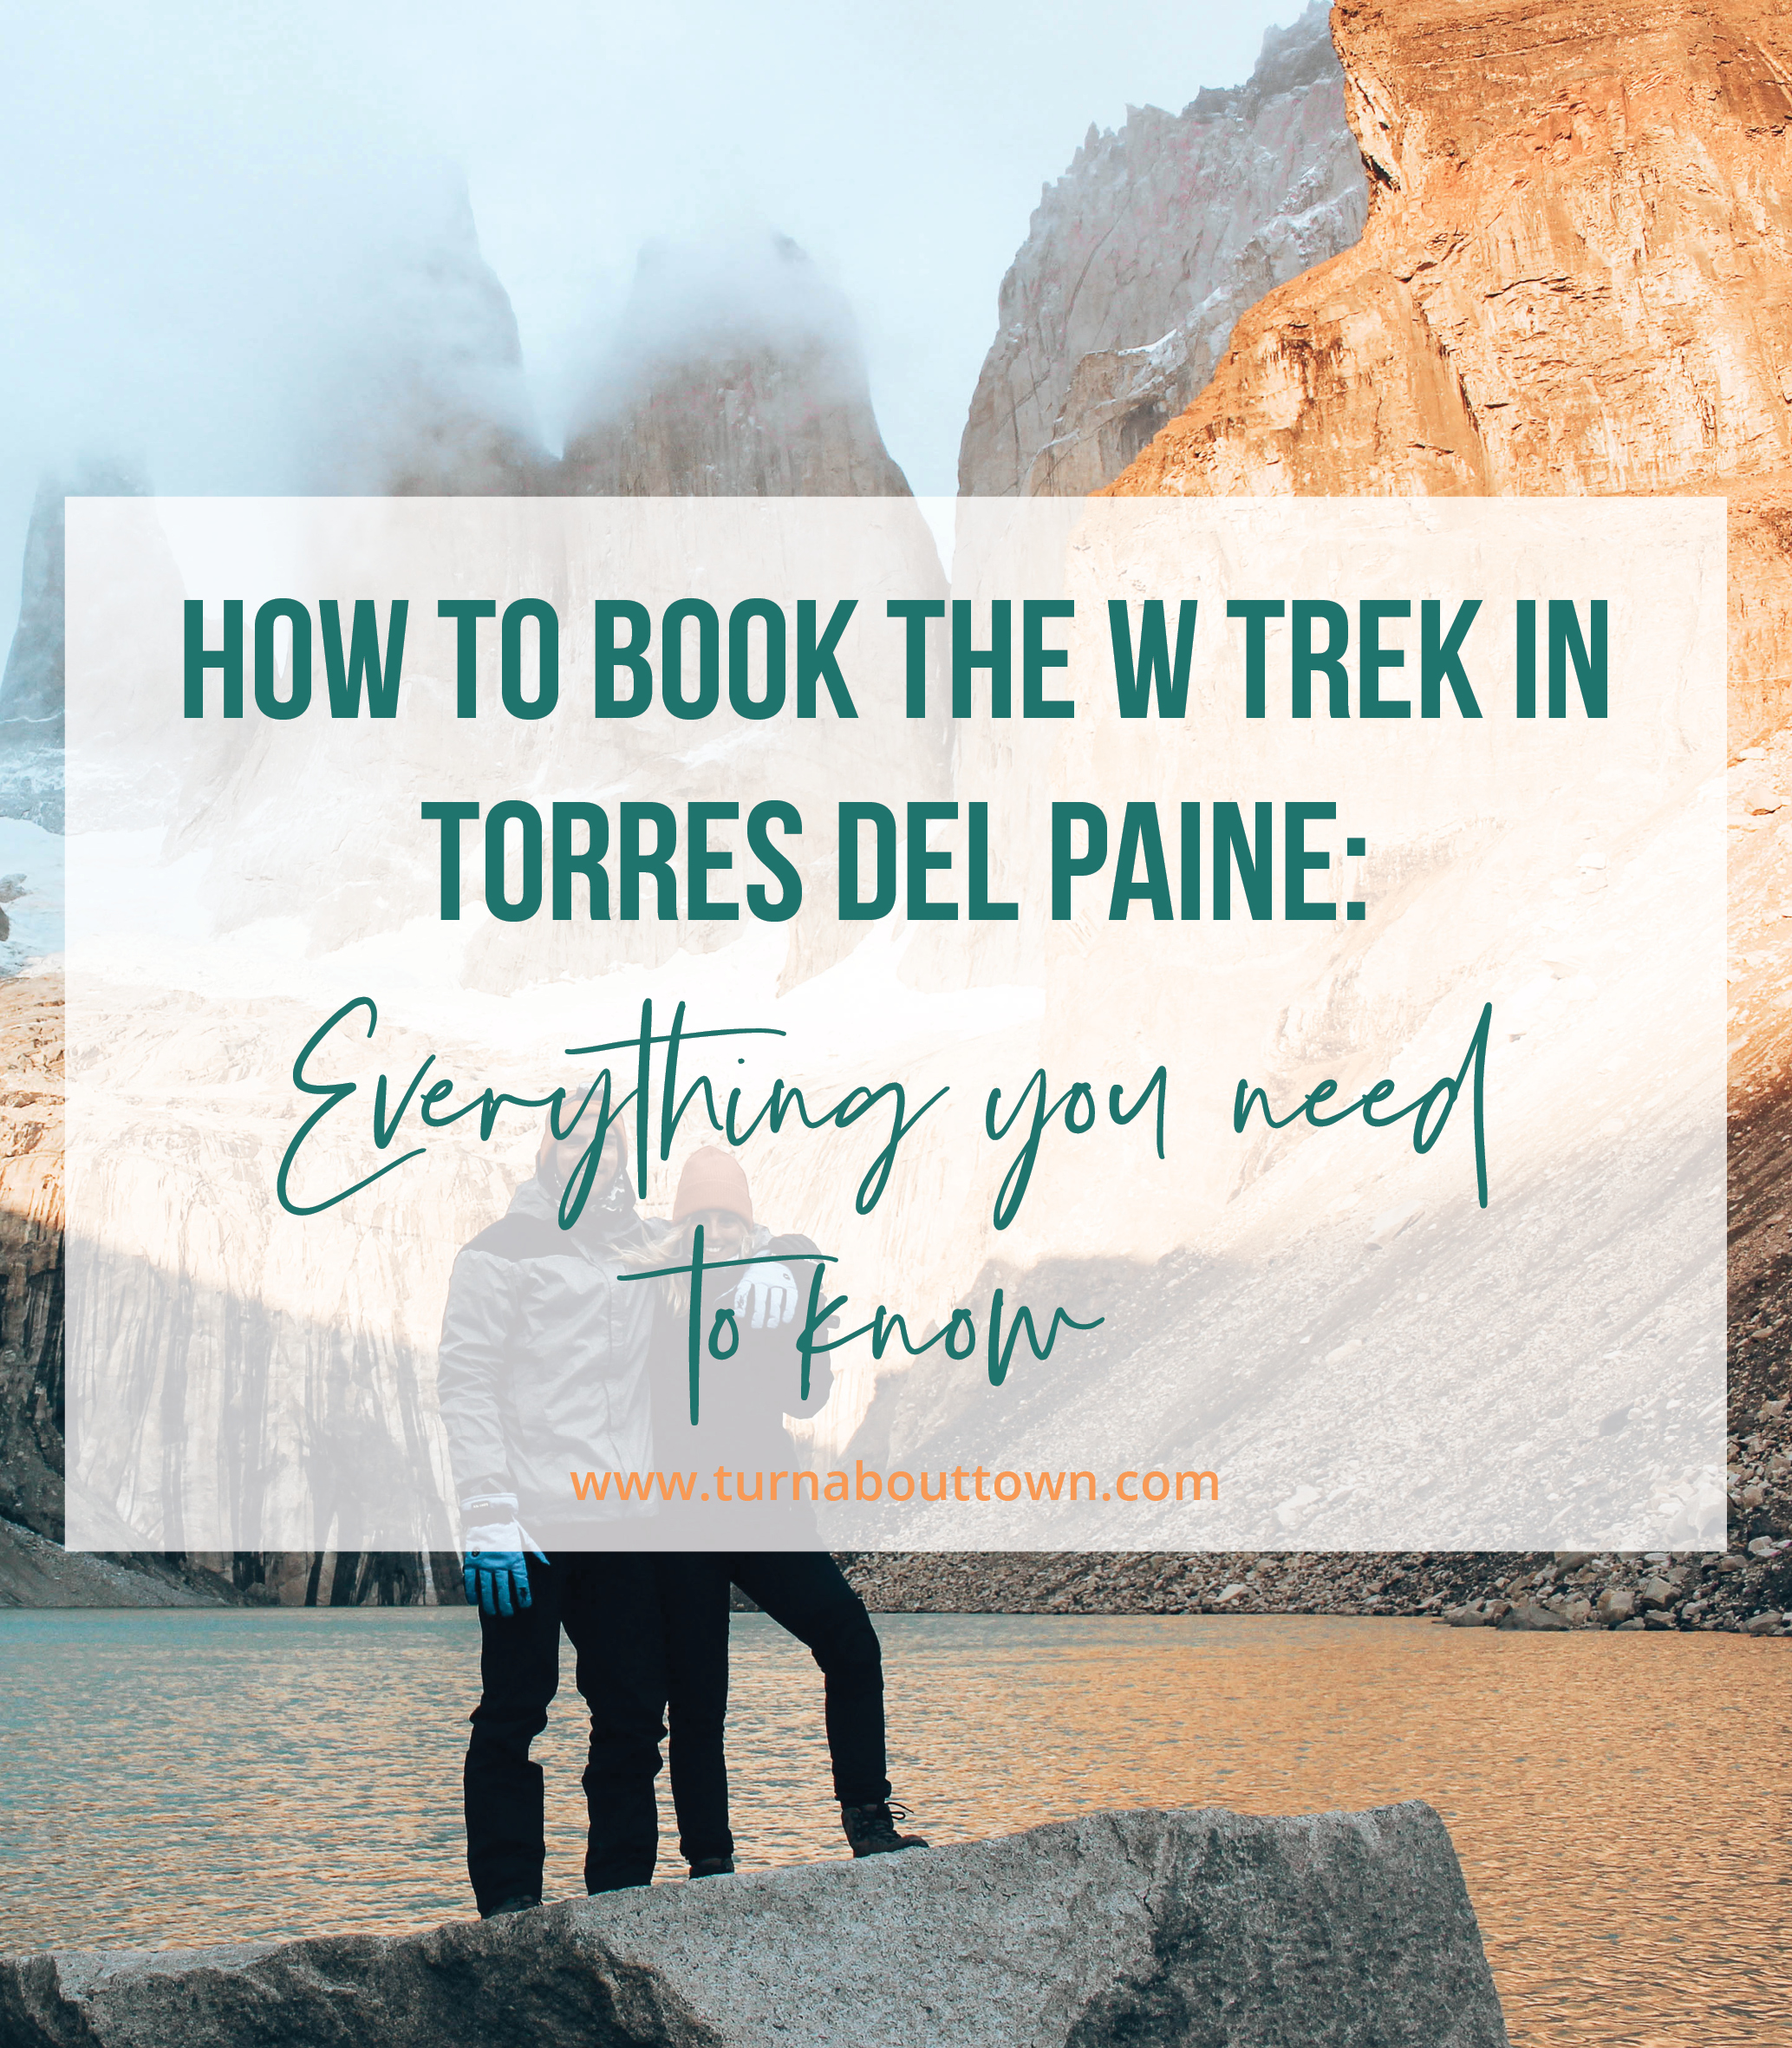 How to Book the W Trek